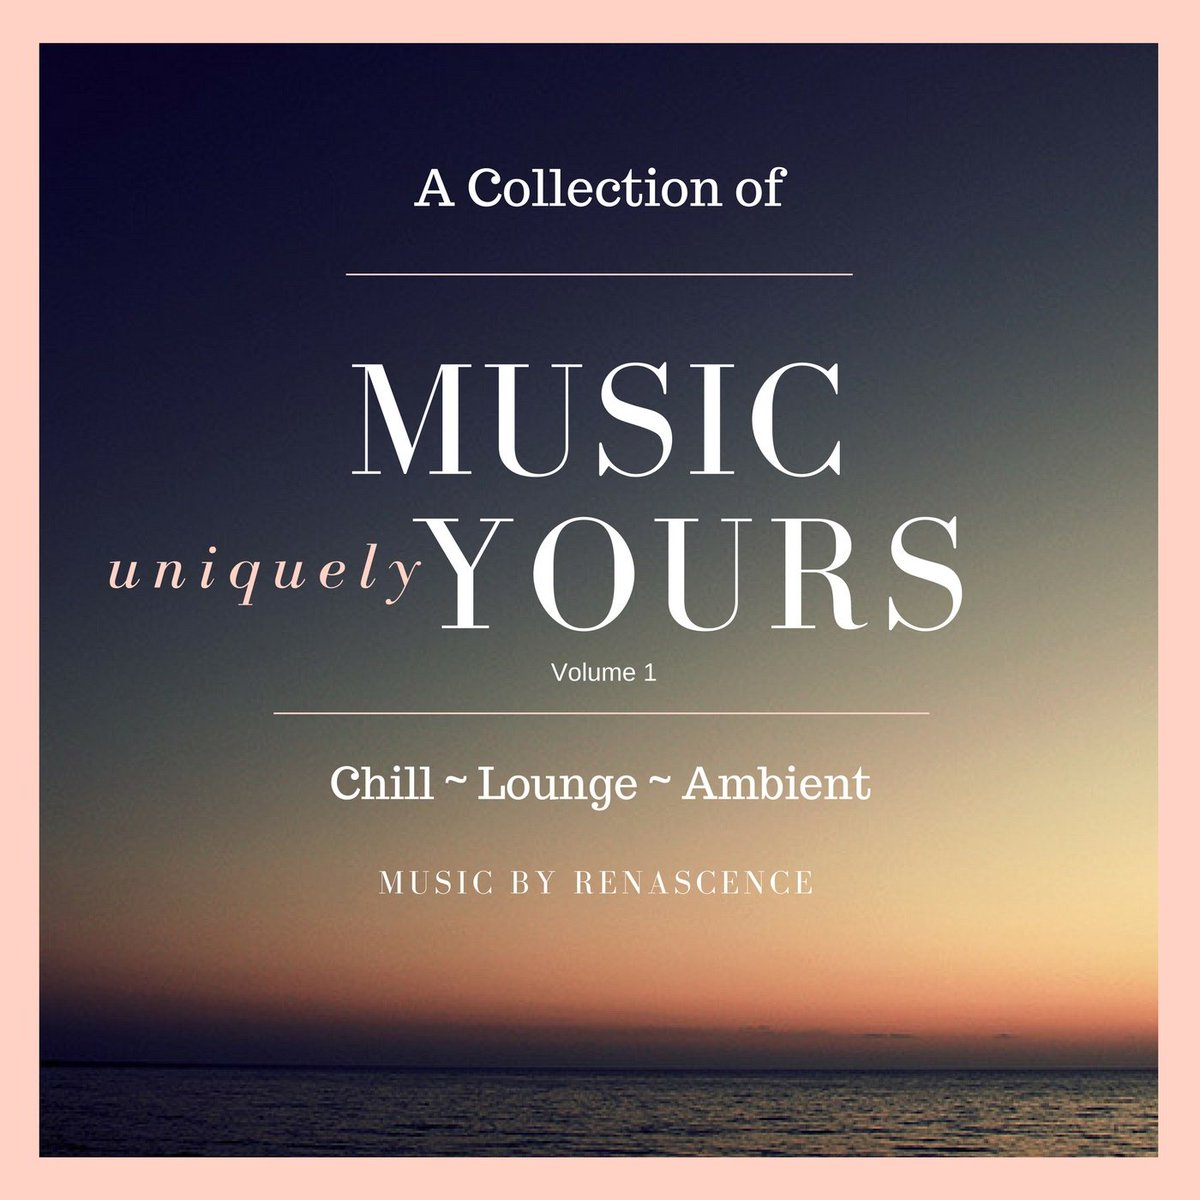 test Twitter Media - New album - Collection of pieces of #chill, lounge, down tempo music now available on #Itunes and Apple Radio https://t.co/jYh90kVxeI https://t.co/CSkh5chlyx